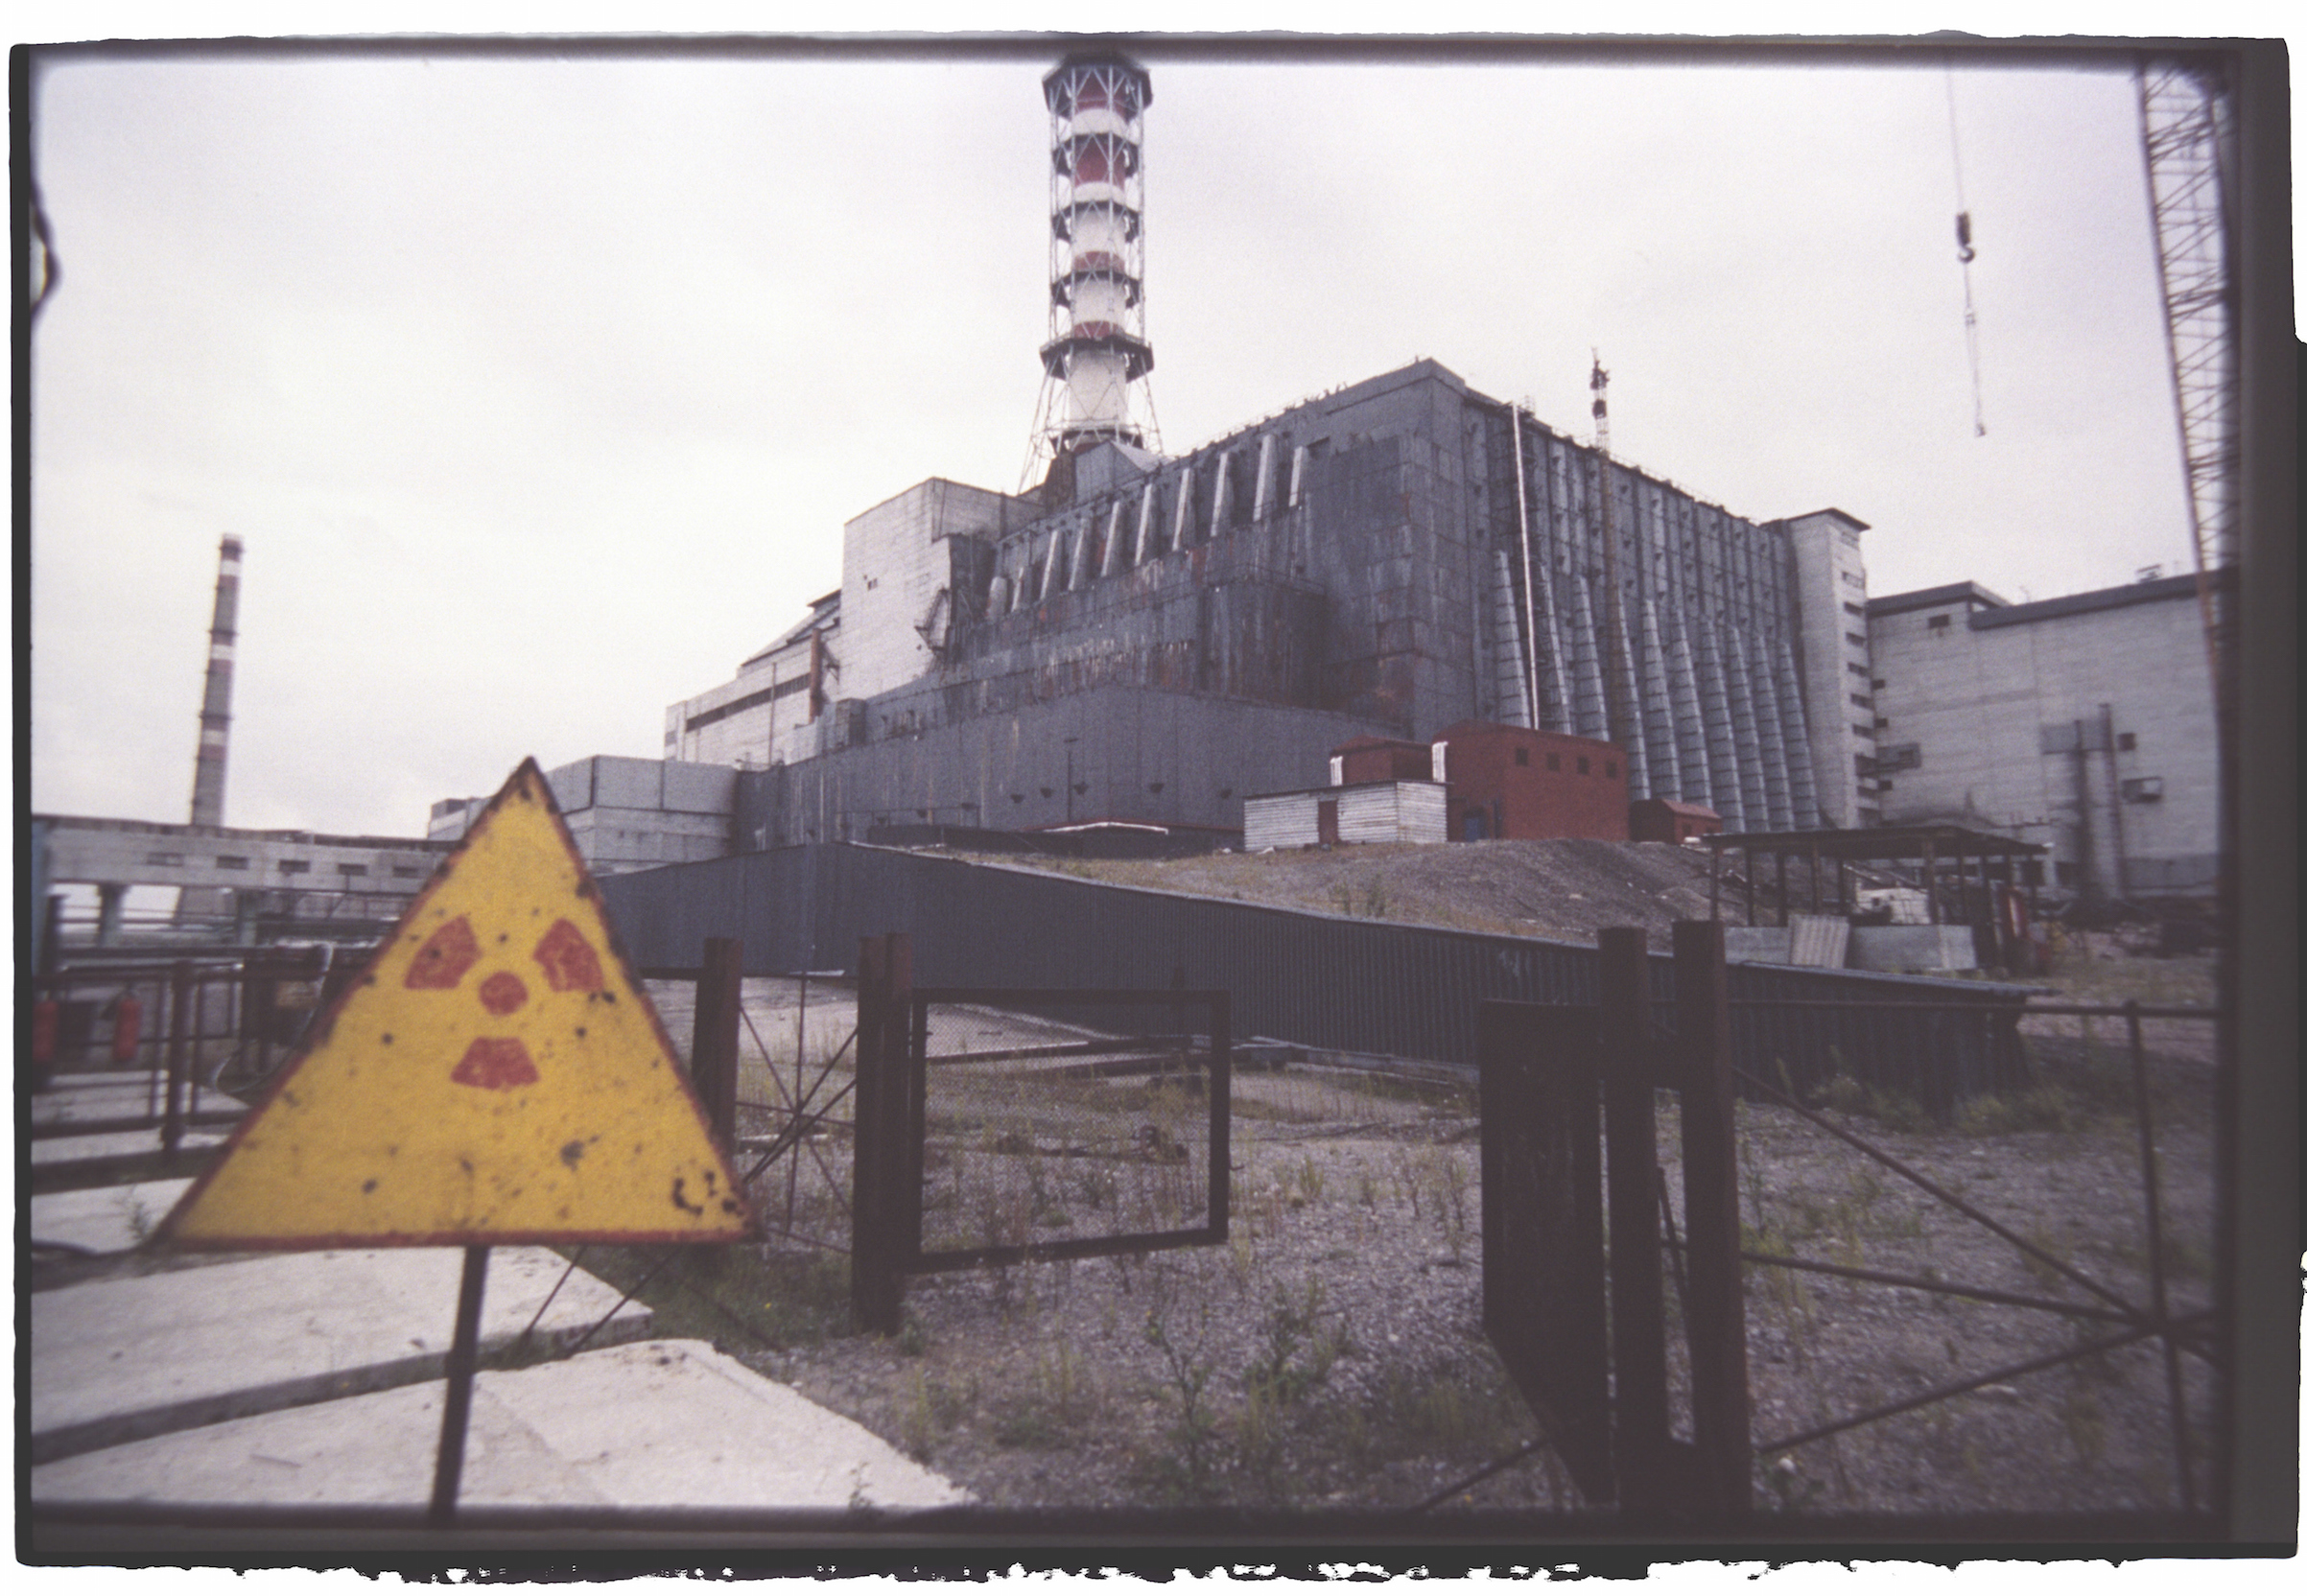 Exterior view of the sarcophagus built on the reactor at Chernobyl nuclear plant. Several years after its construction, work still remained to be carried out on the site.